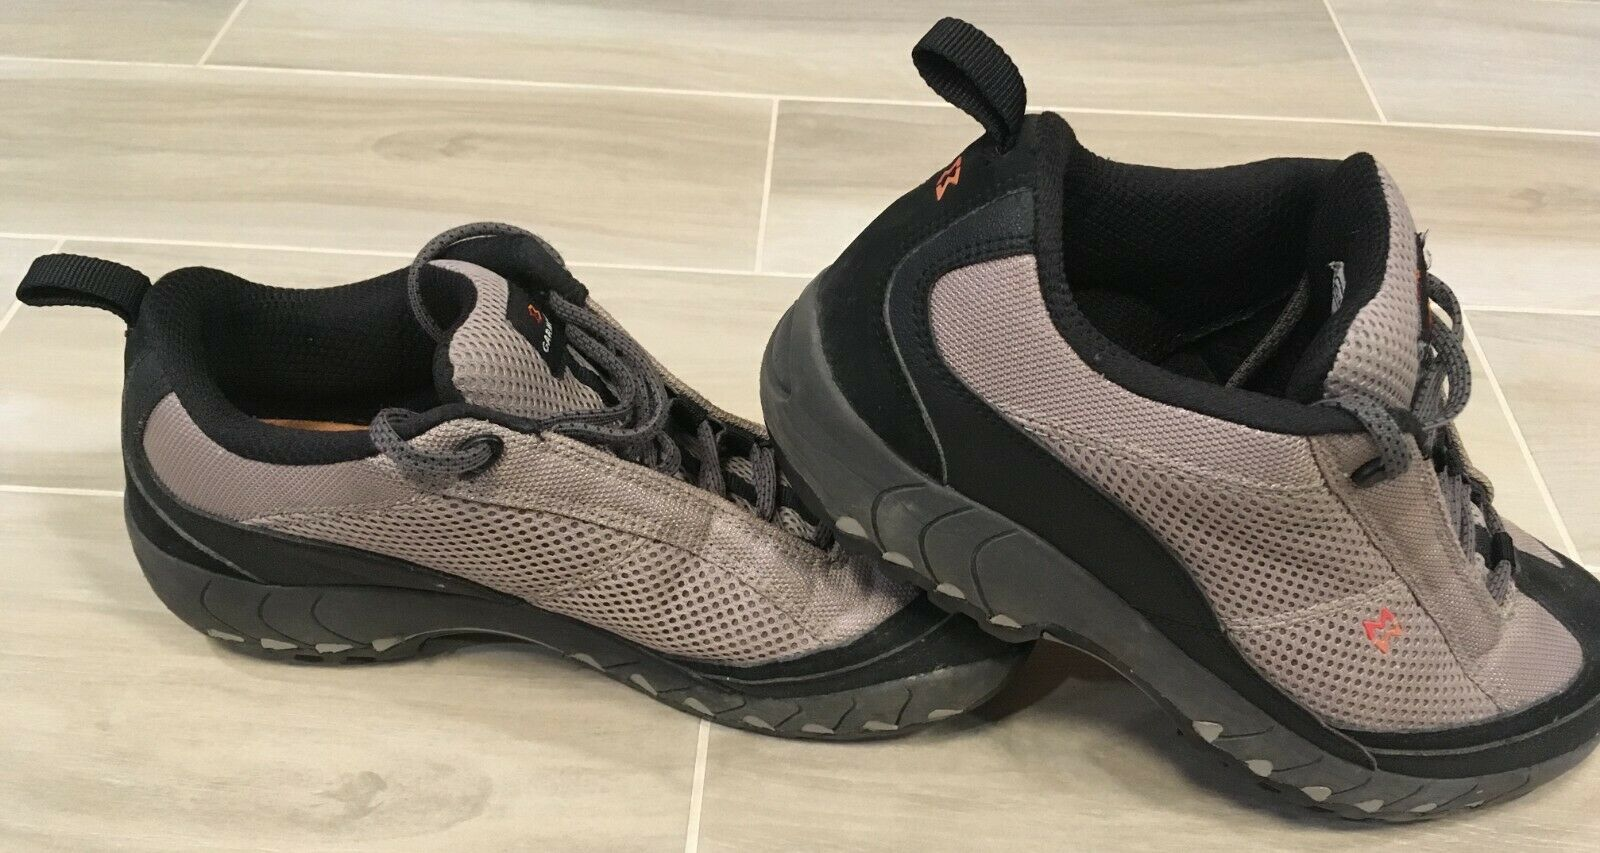 Garmont Hiking  Approach shoes Trekking Boots US 9.5,  get the latest